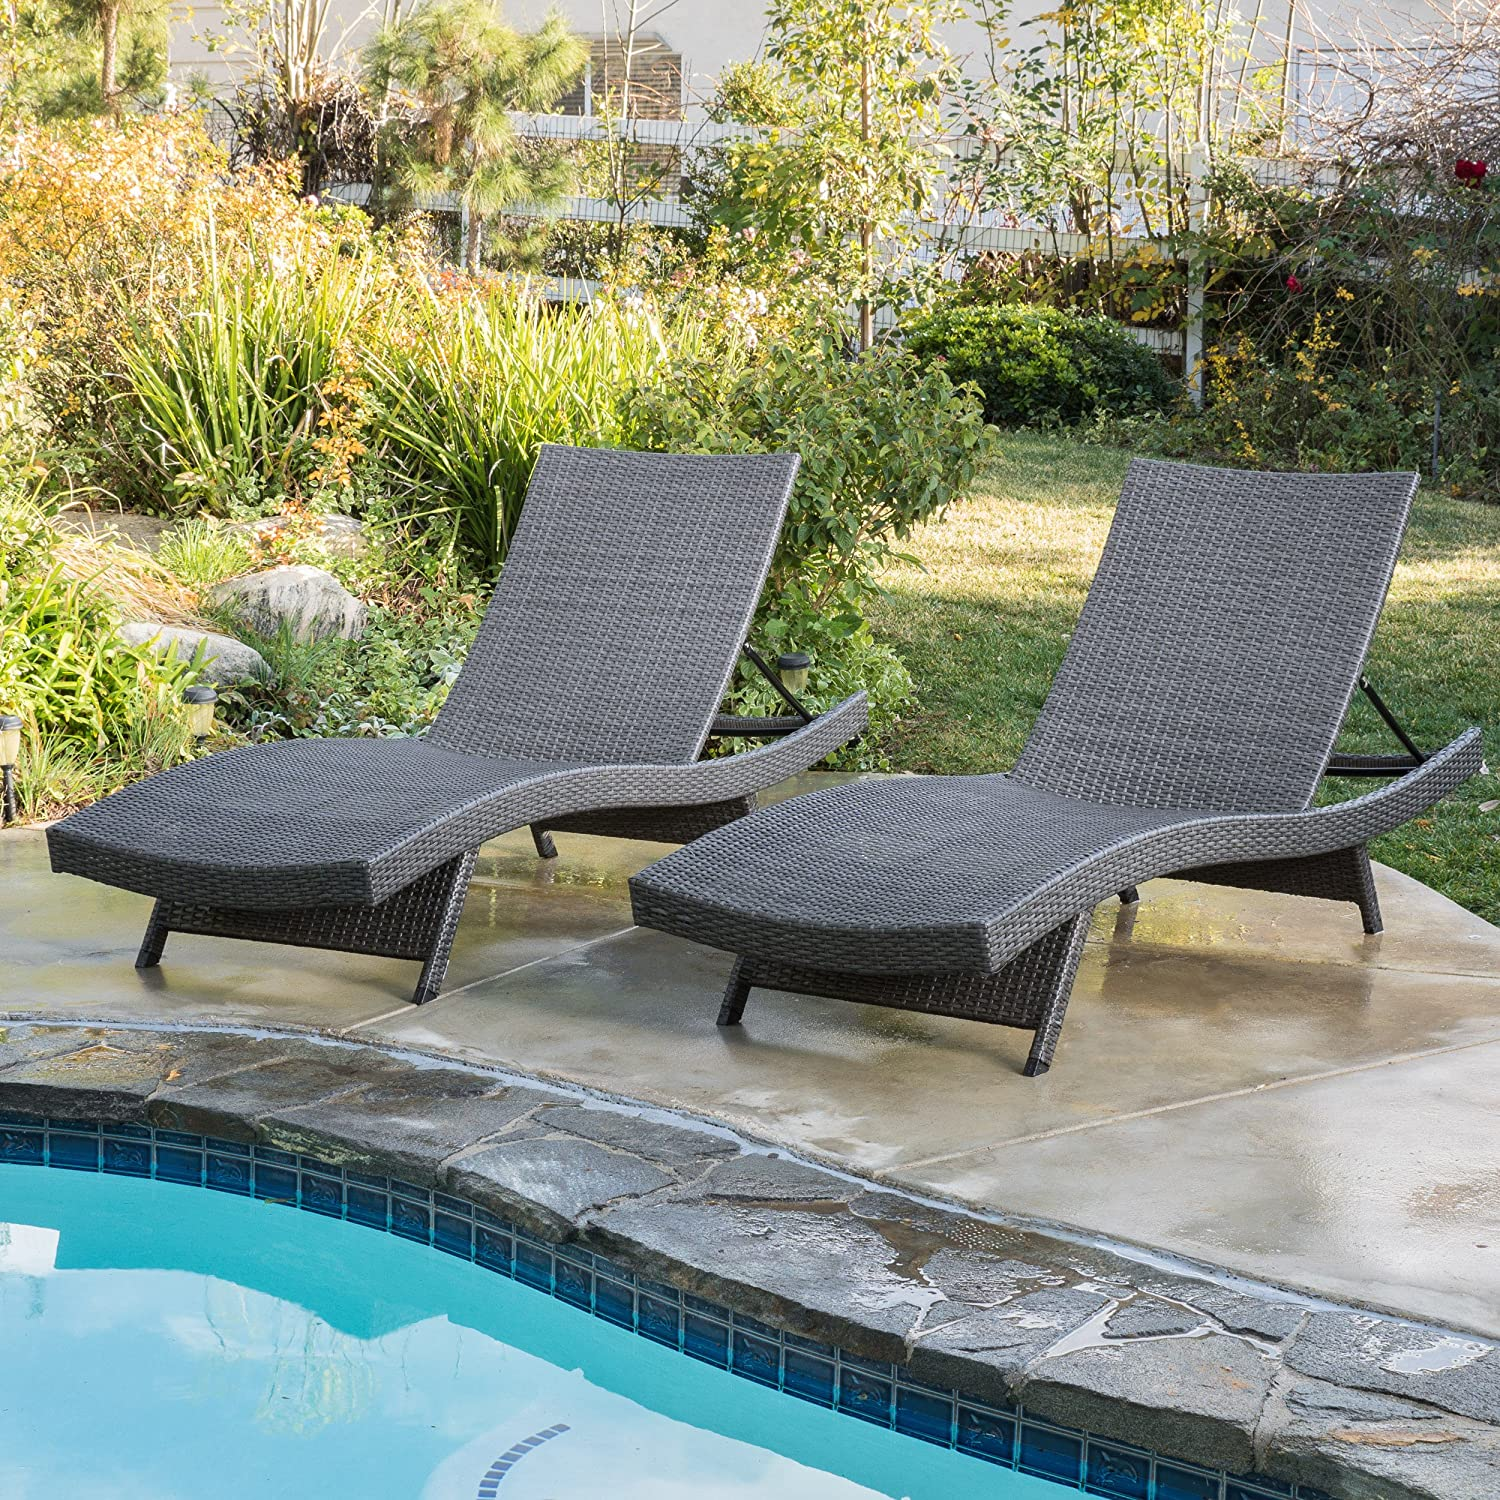 5. Patio Furniture Set With Black Detachable Cushions